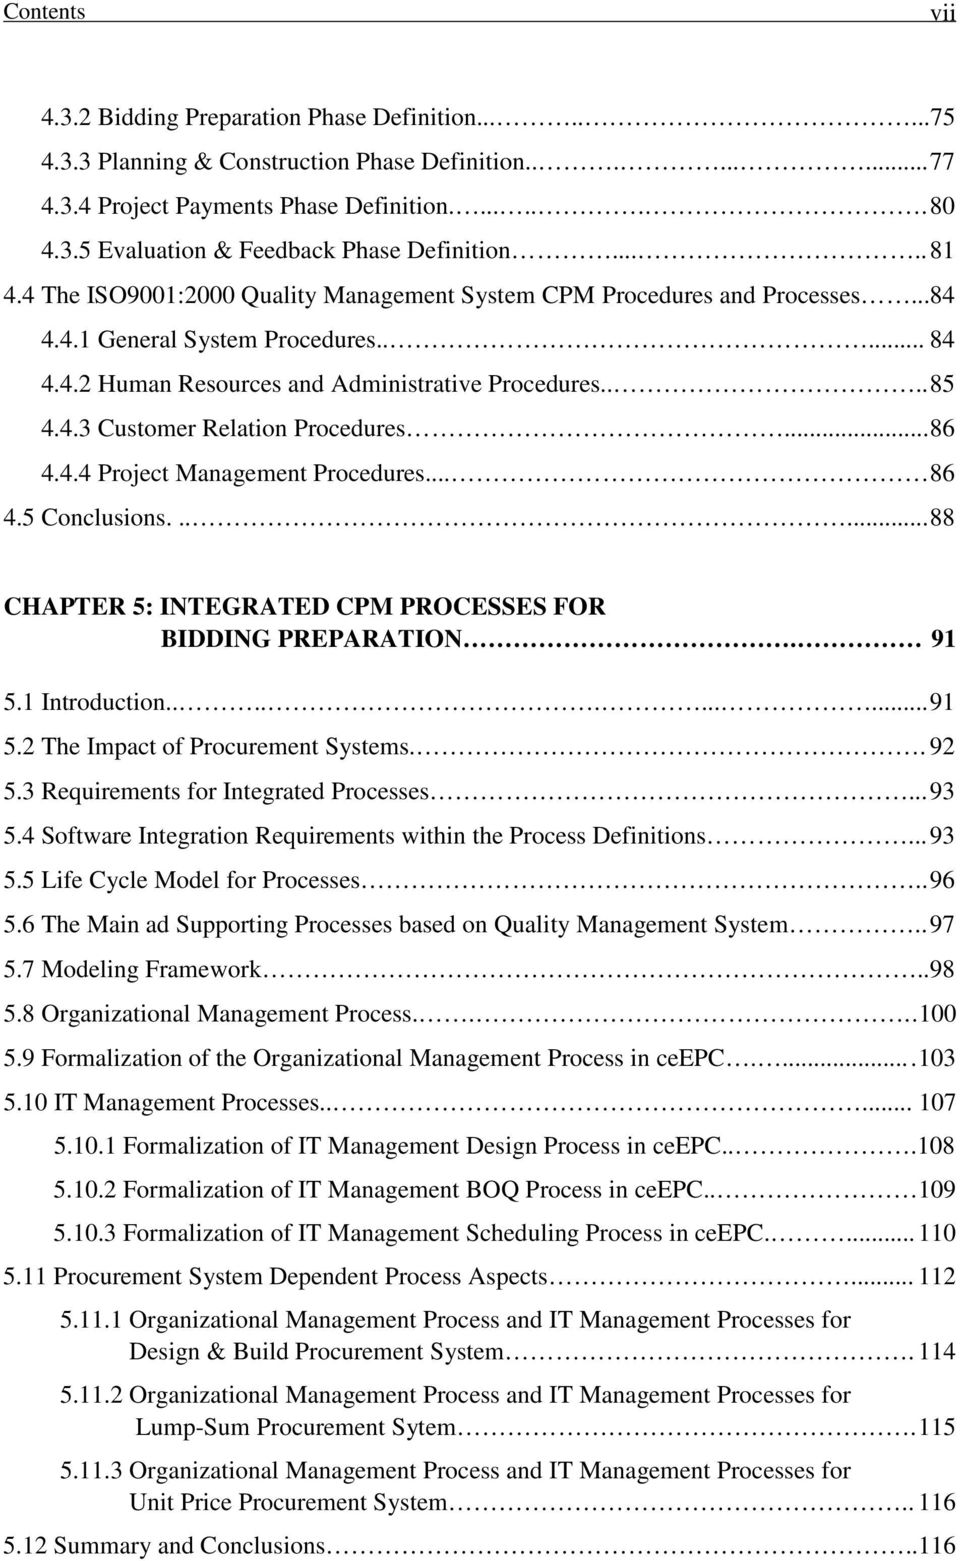 .. 86 4.4.4 Project Management Procedures... 86 4.5 Conclusions...... 88 CHAPTER 5: INTEGRATED CPM PROCESSES FOR BIDDING PREPARATION. 91 5.1 Introduction........... 91 5.2 The Impact of Procurement Systems.